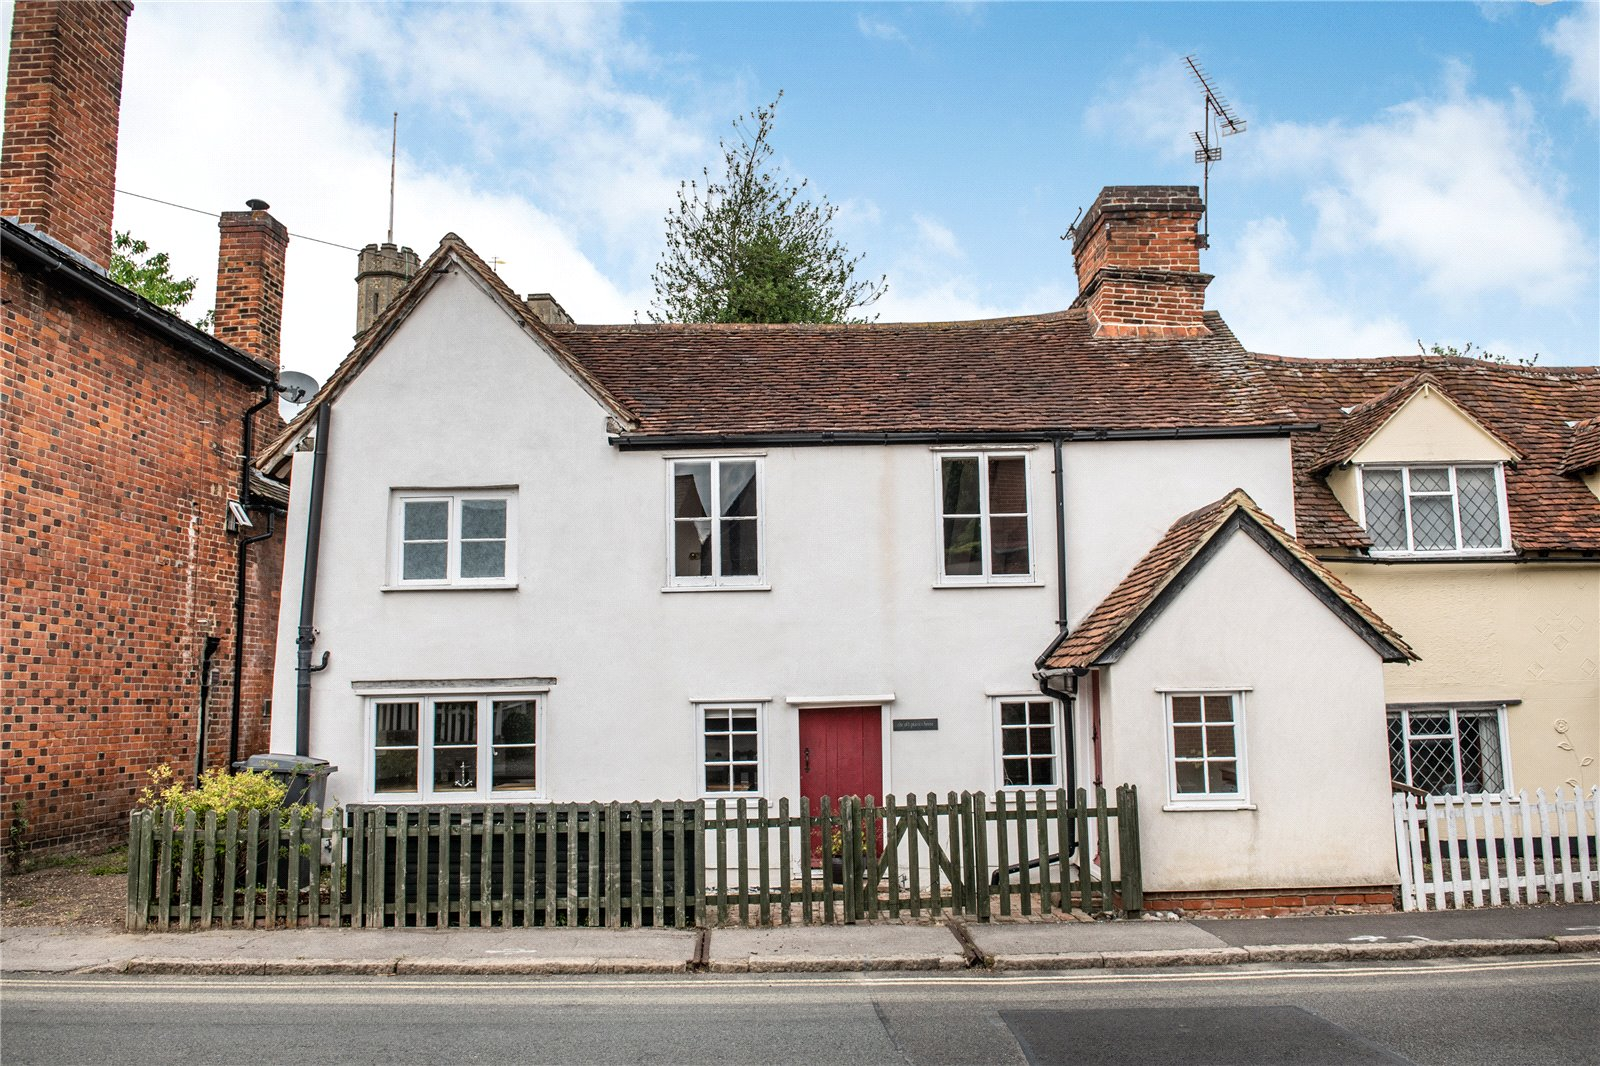 The Old Priests House The, Great Waltham, Essex